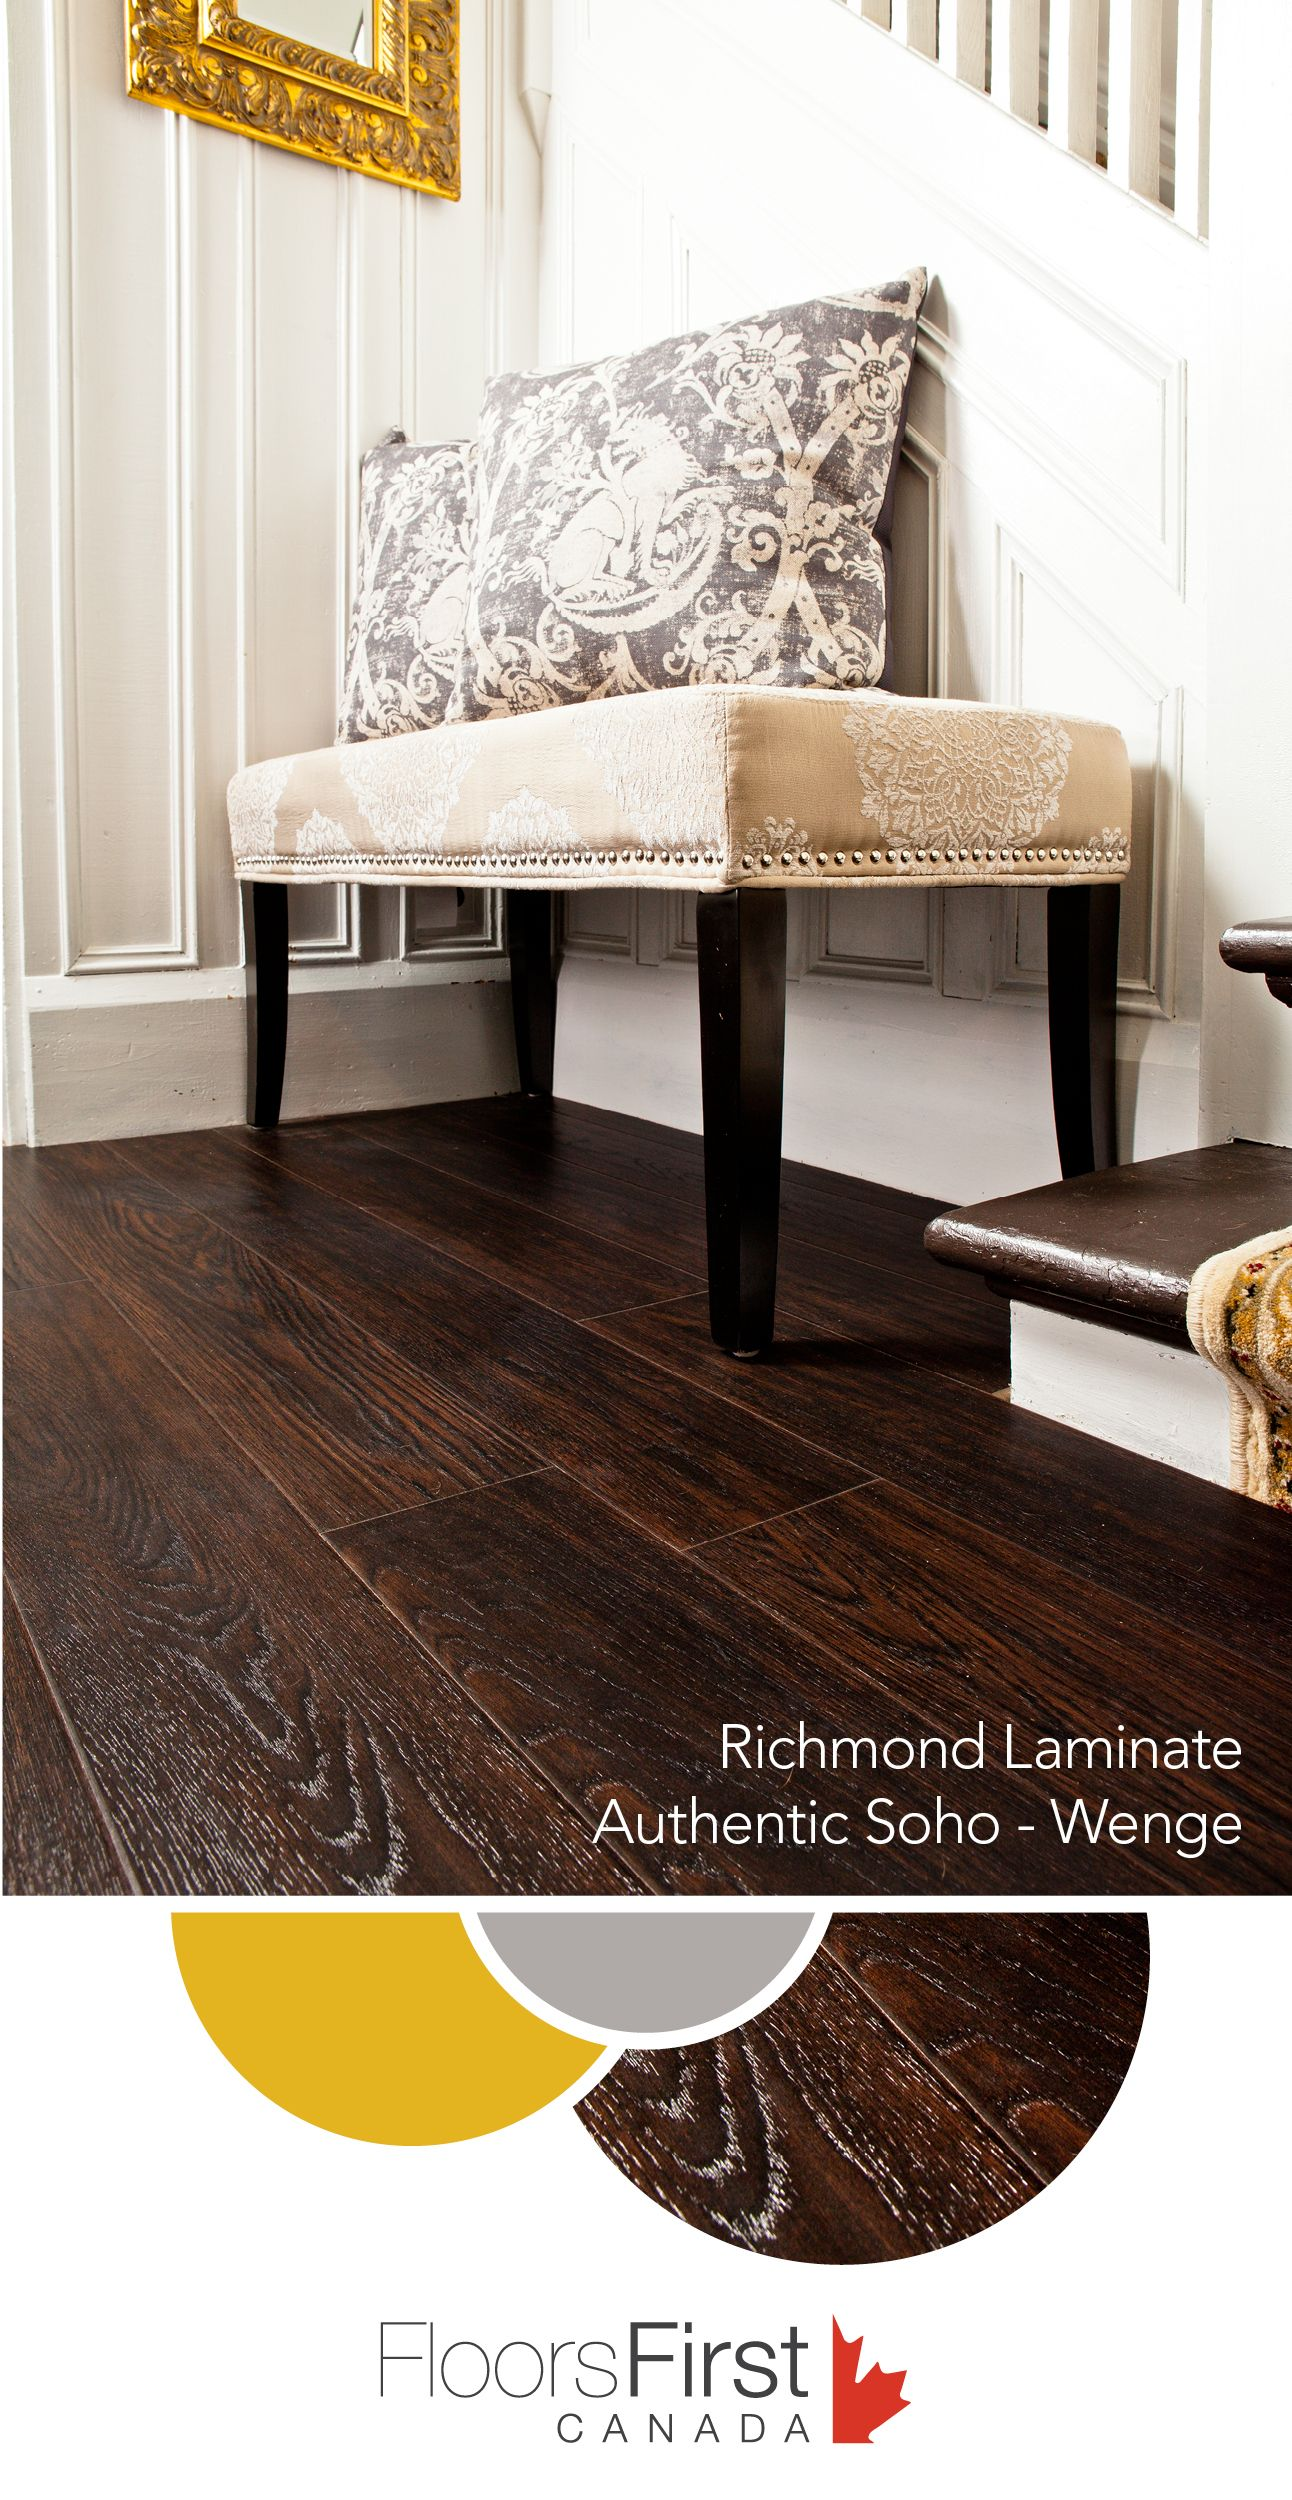 It's crazy how this Laminate floor looks so much like